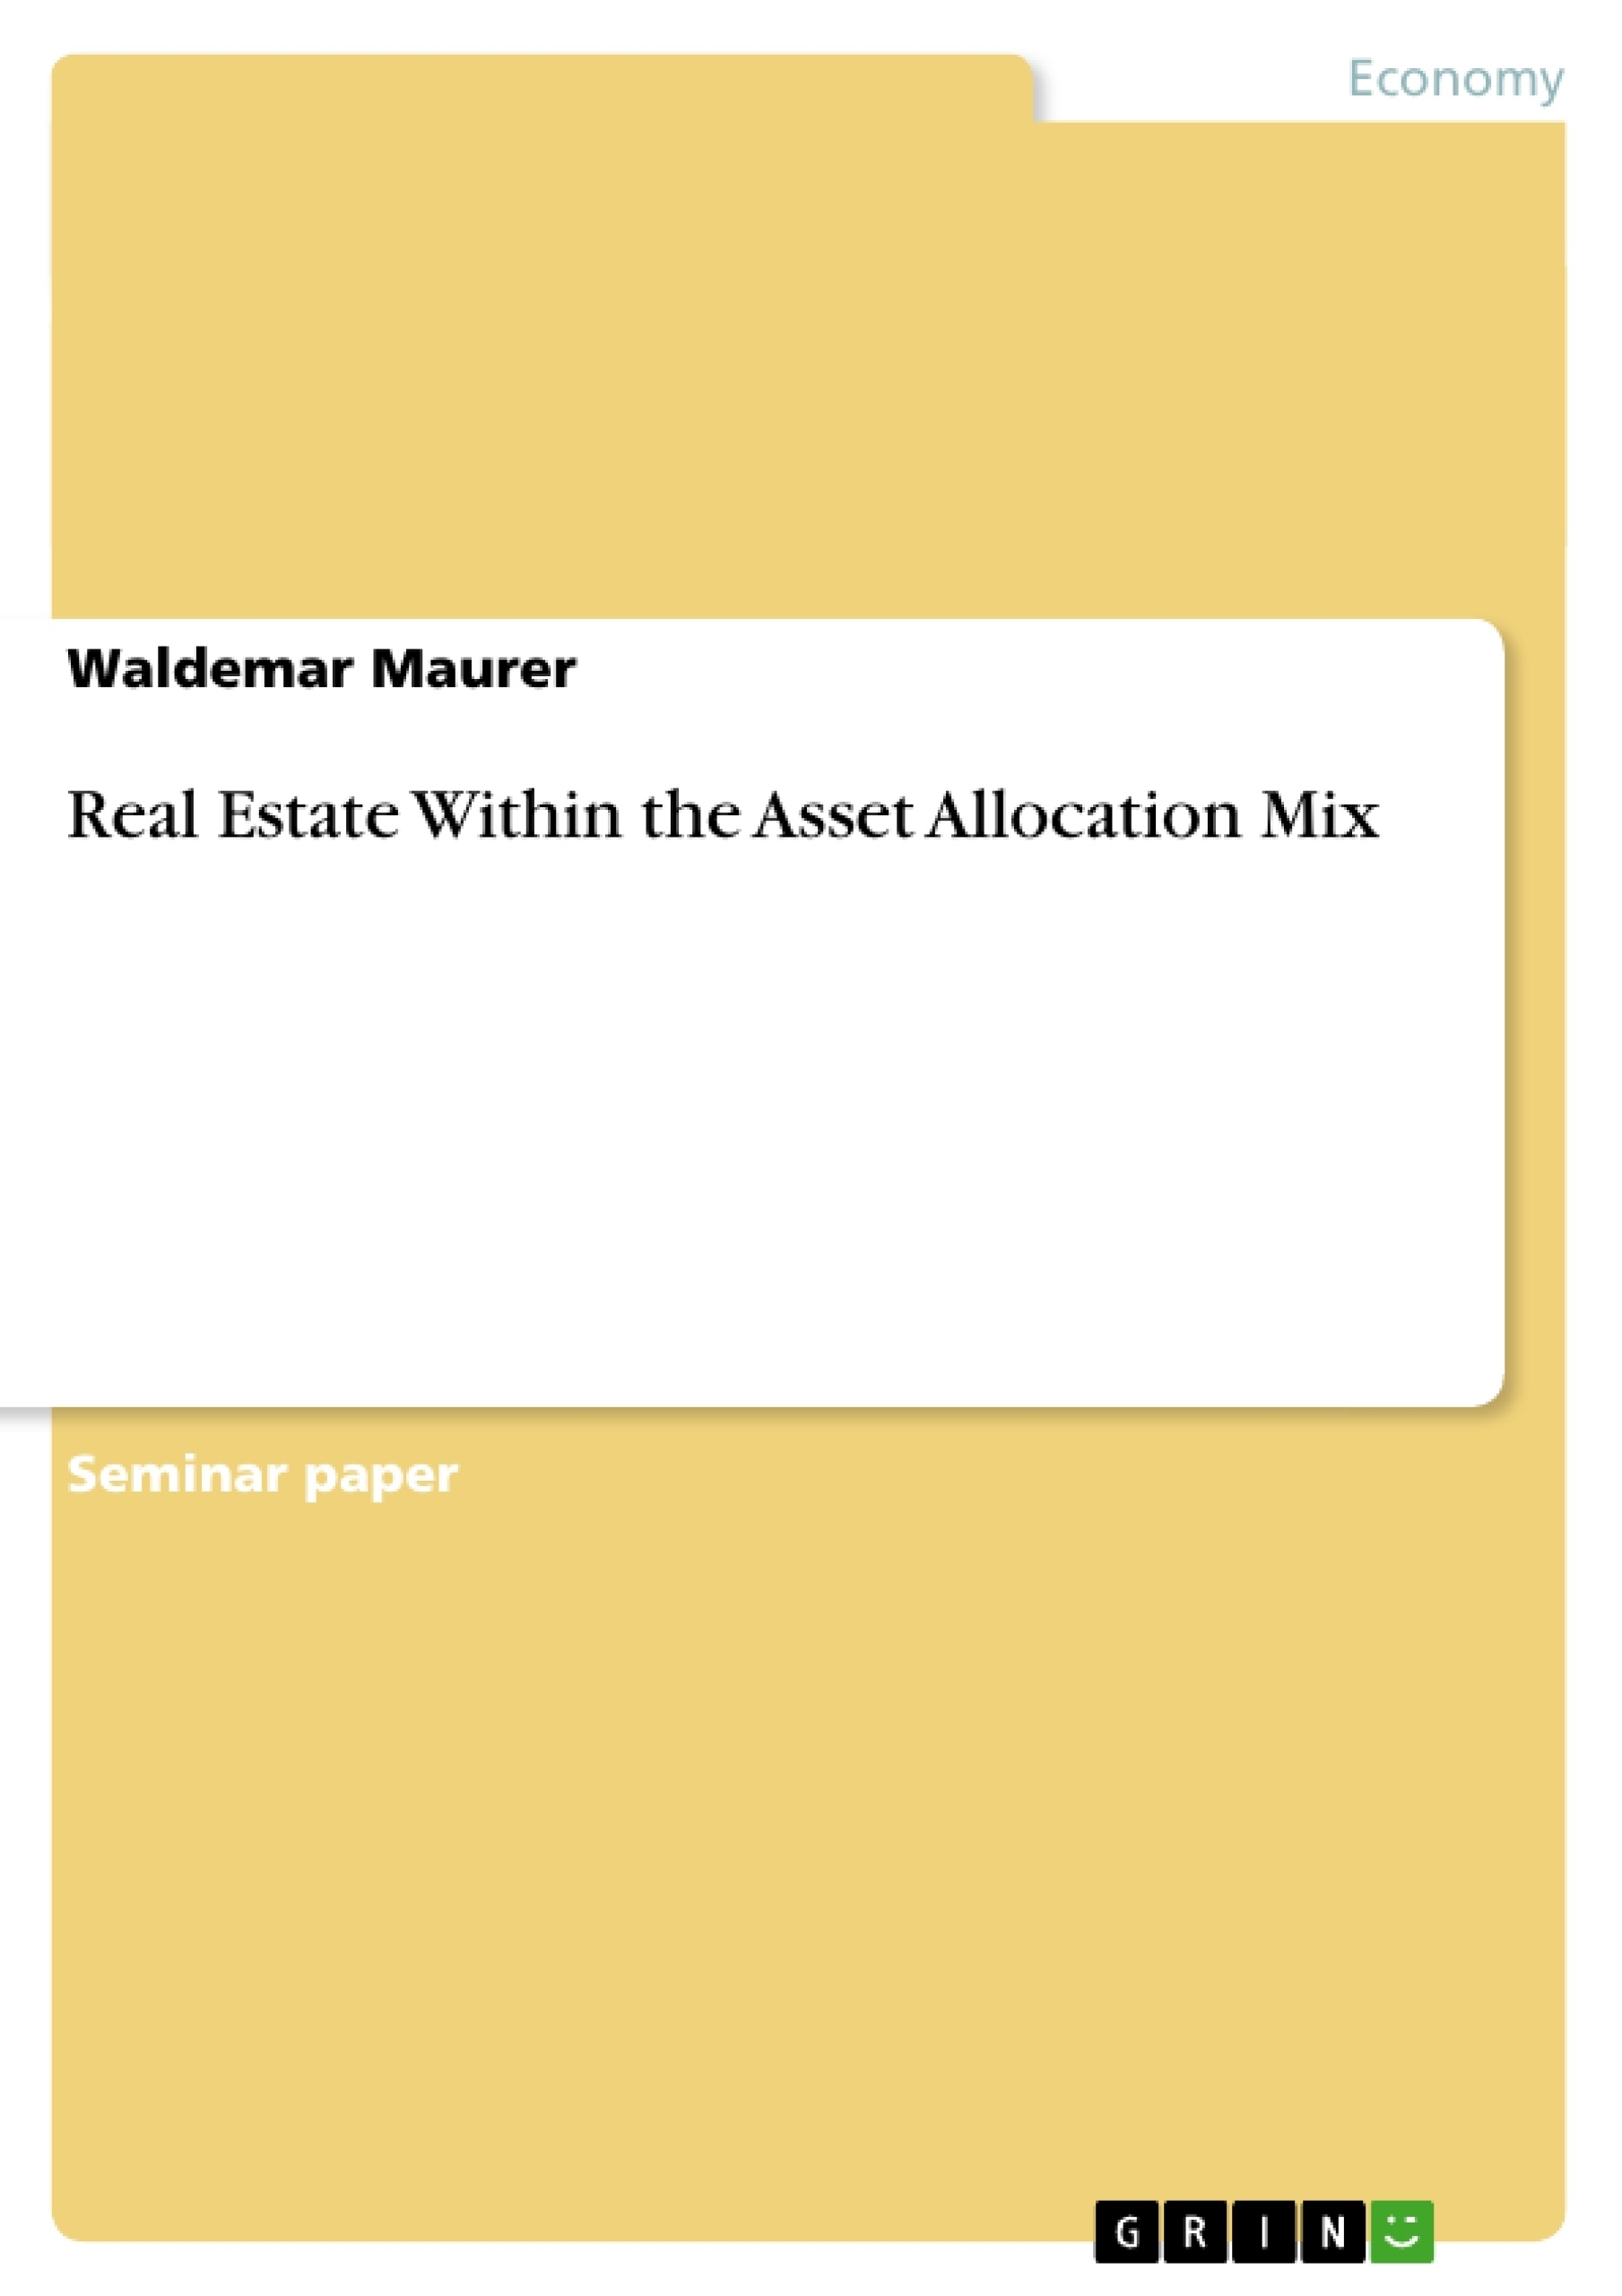 Title: Real Estate Within the Asset Allocation Mix